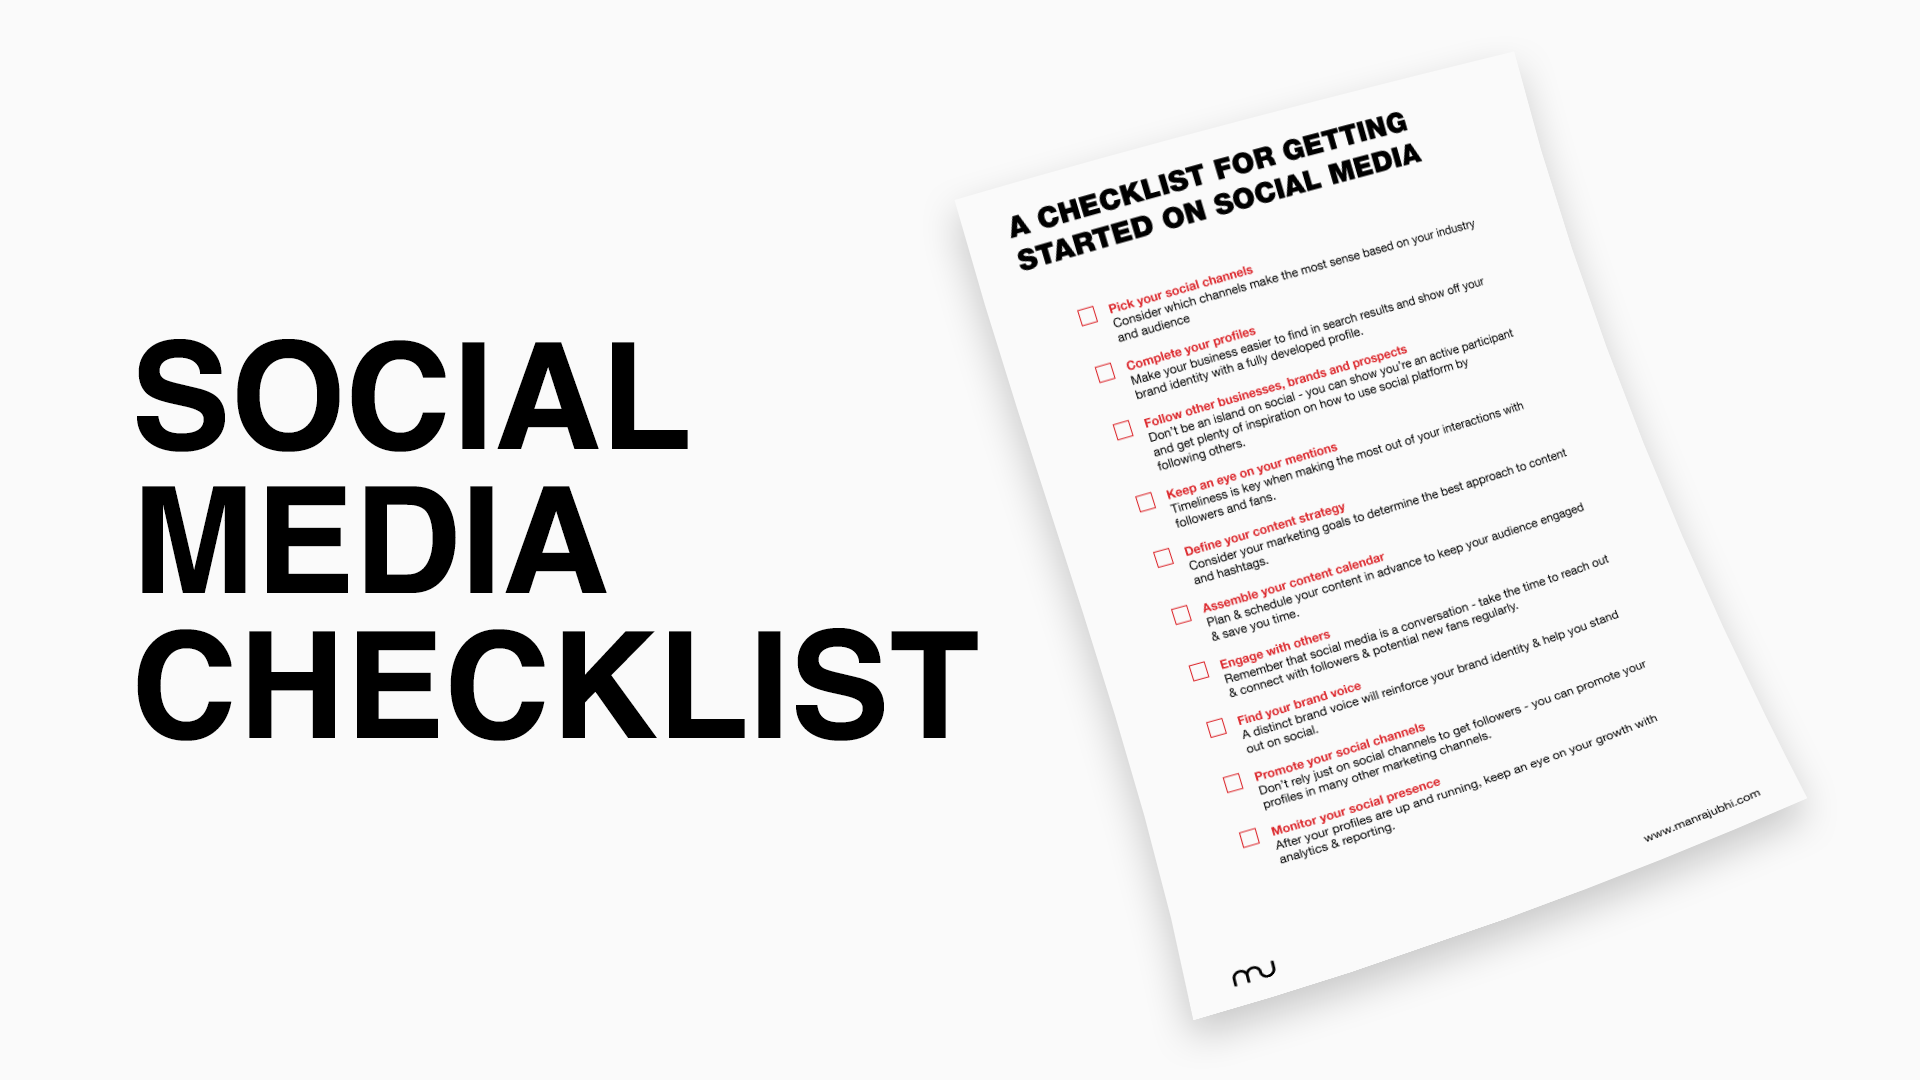 Social Media Checklist - Manraj Ubhi